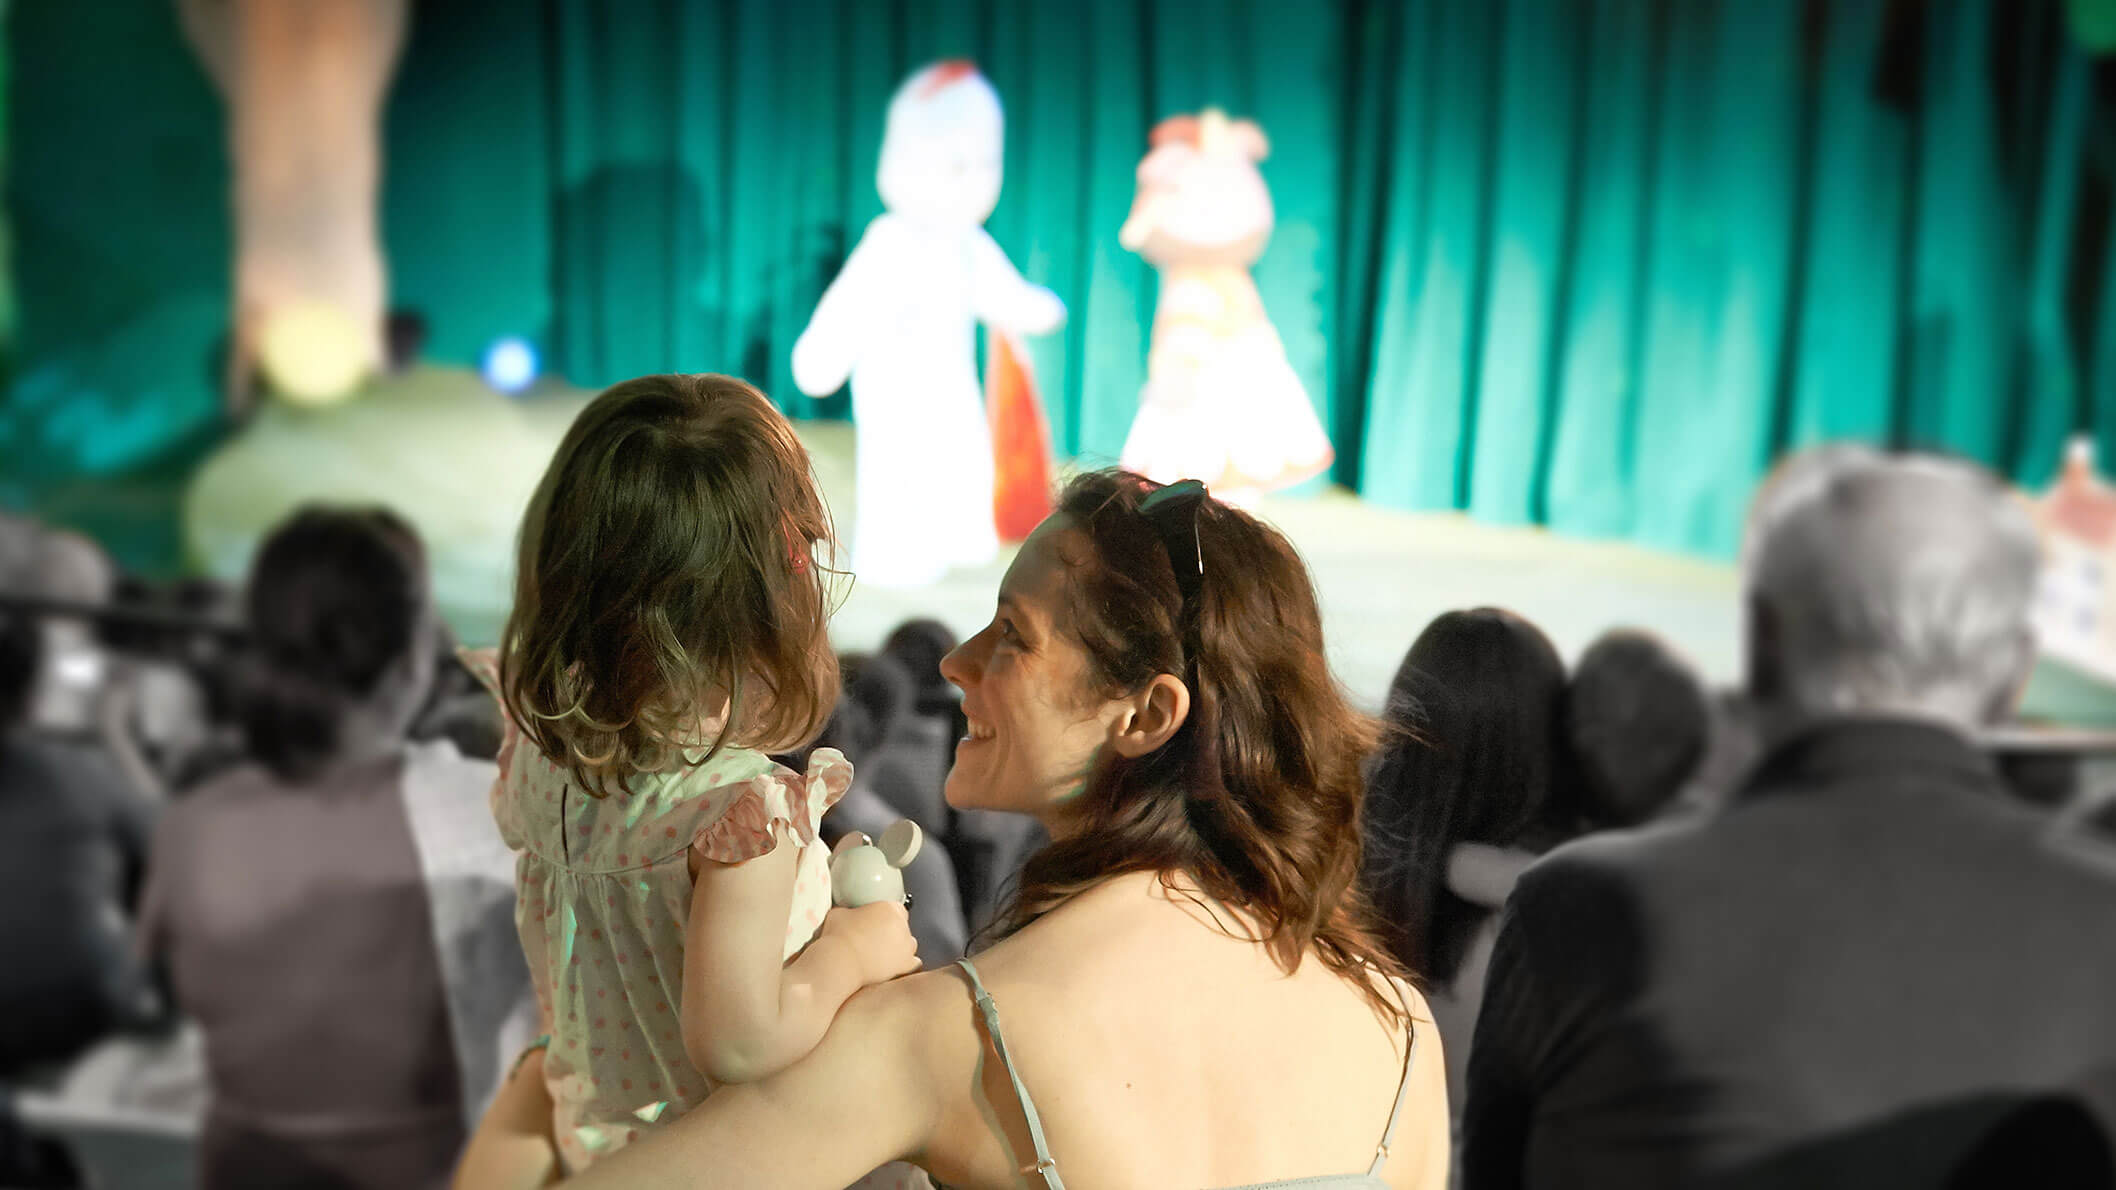 A mother and her young daughter sitting inside a theatre, with a stage in the background and people in their seats.